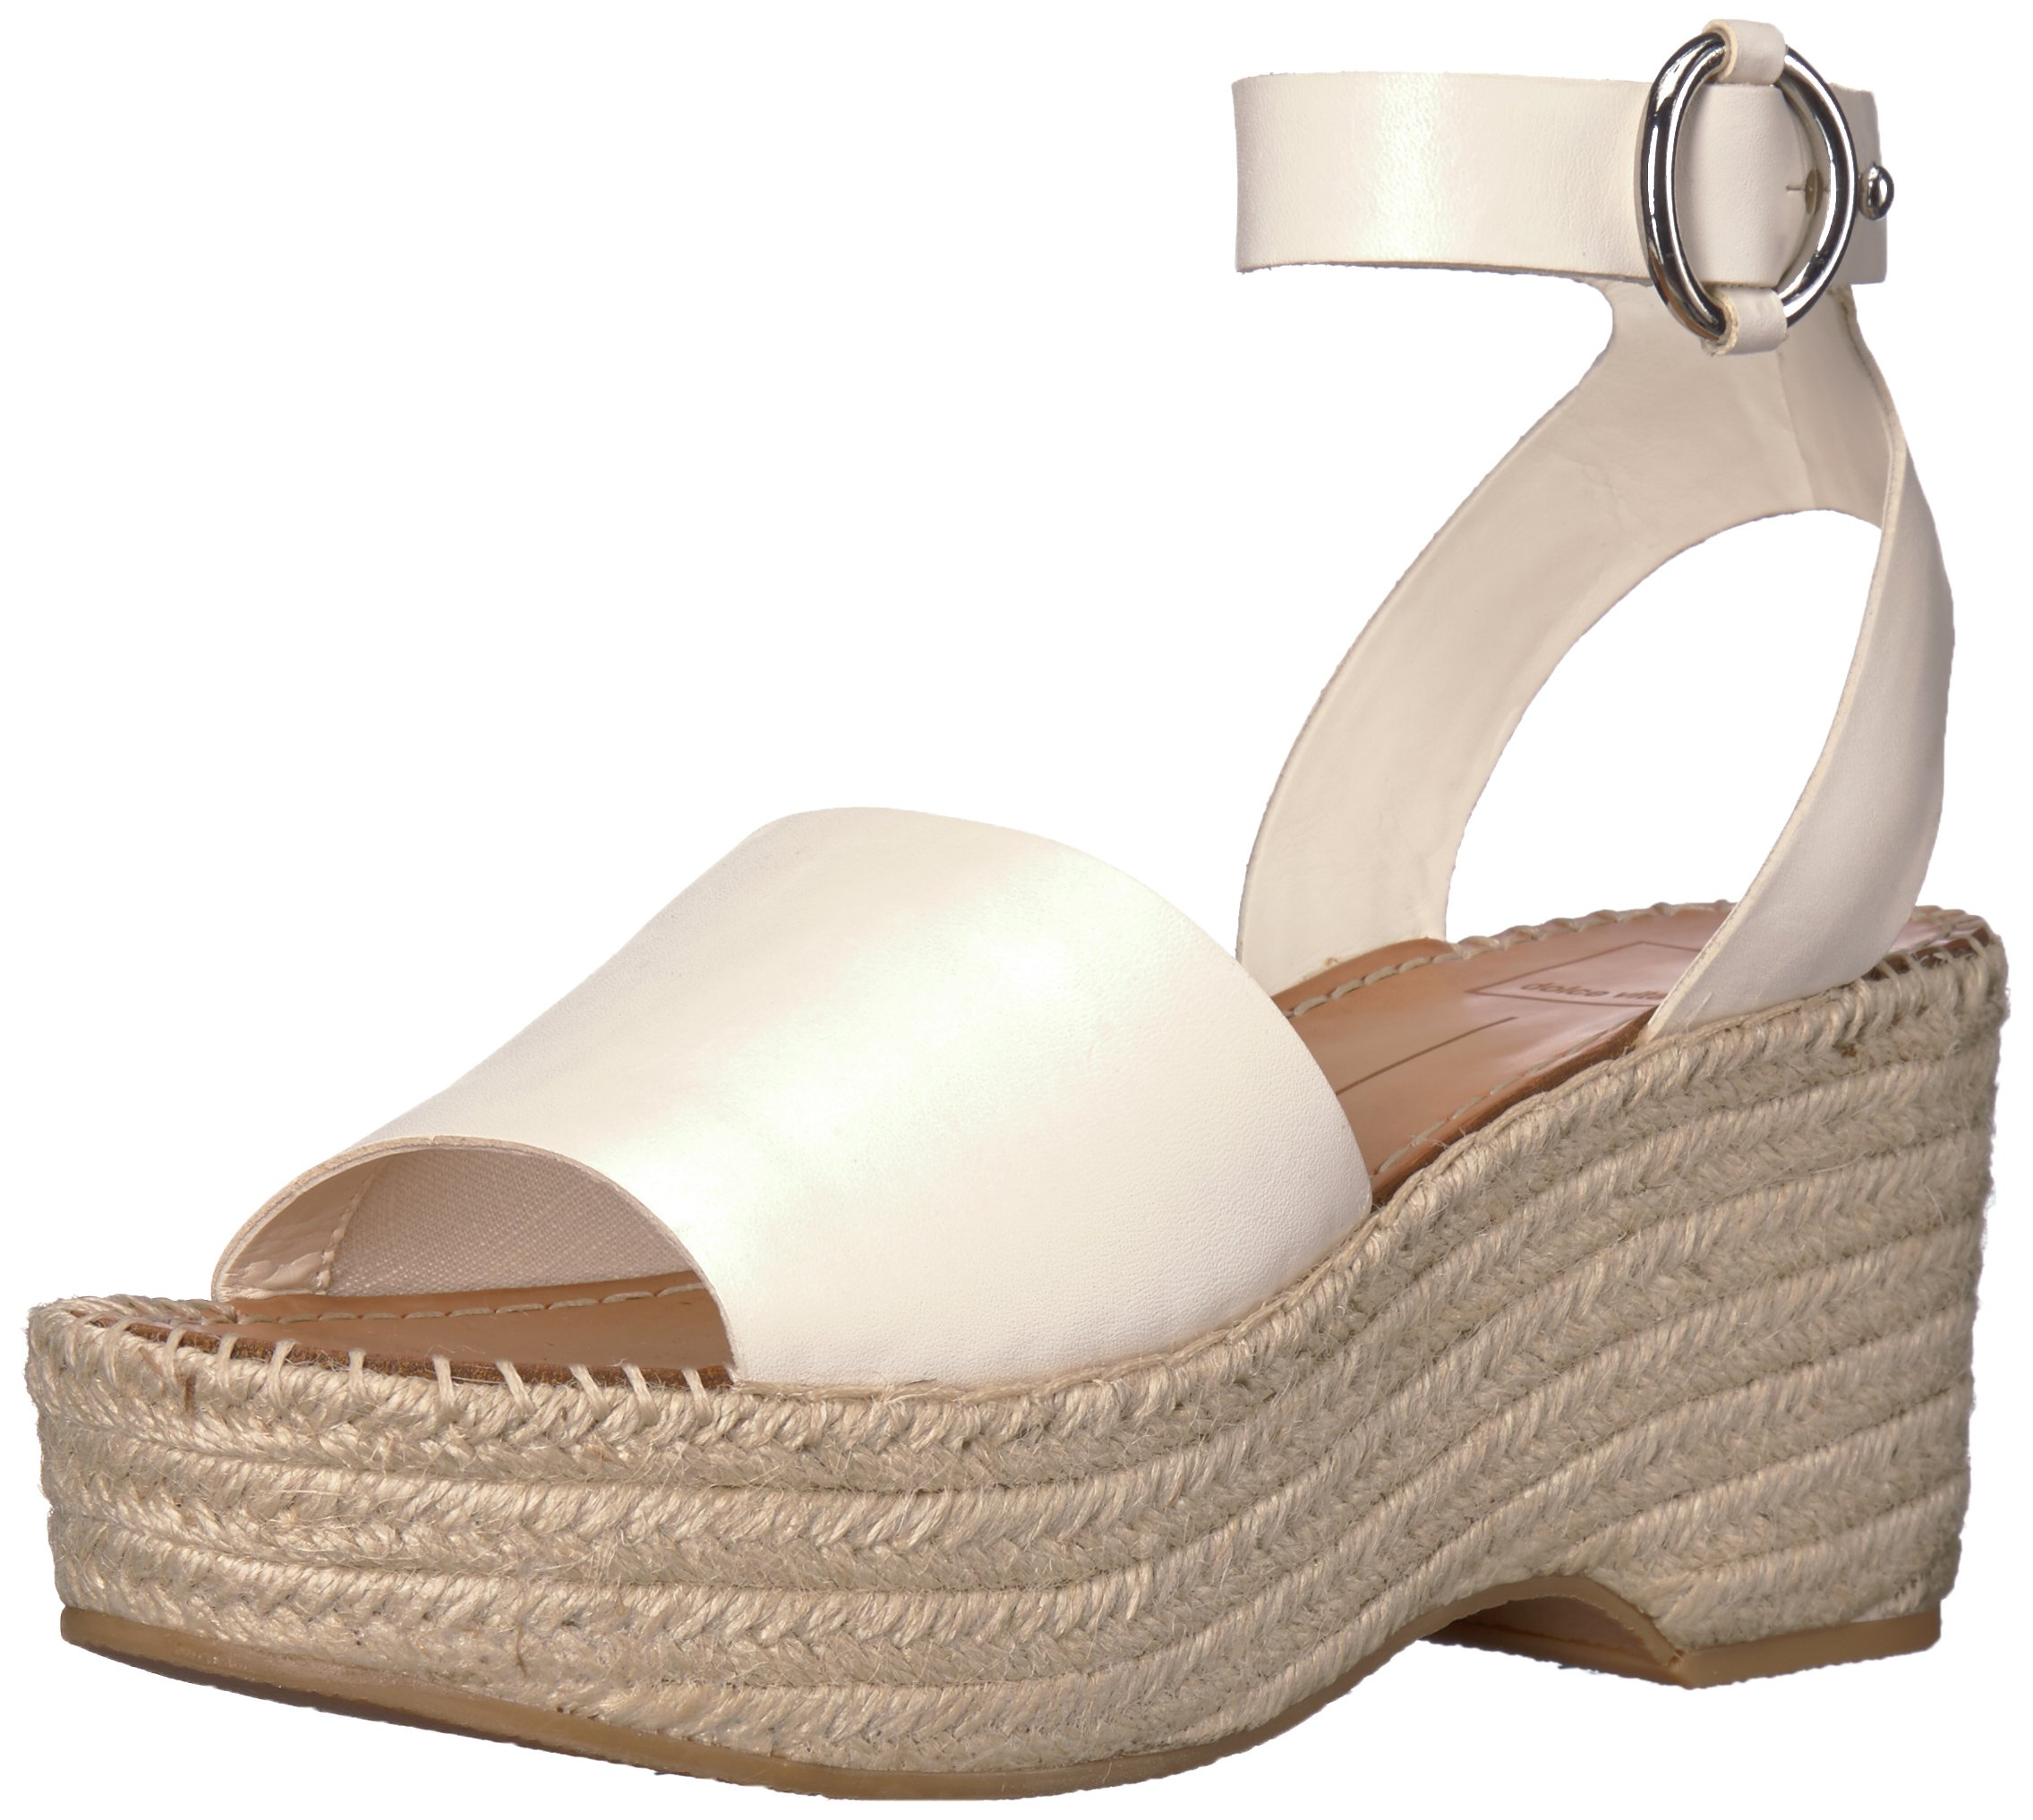 Dolce Vita Women's Lesly Espadrille Wedge Sandal, Off White Leather, 10 M US